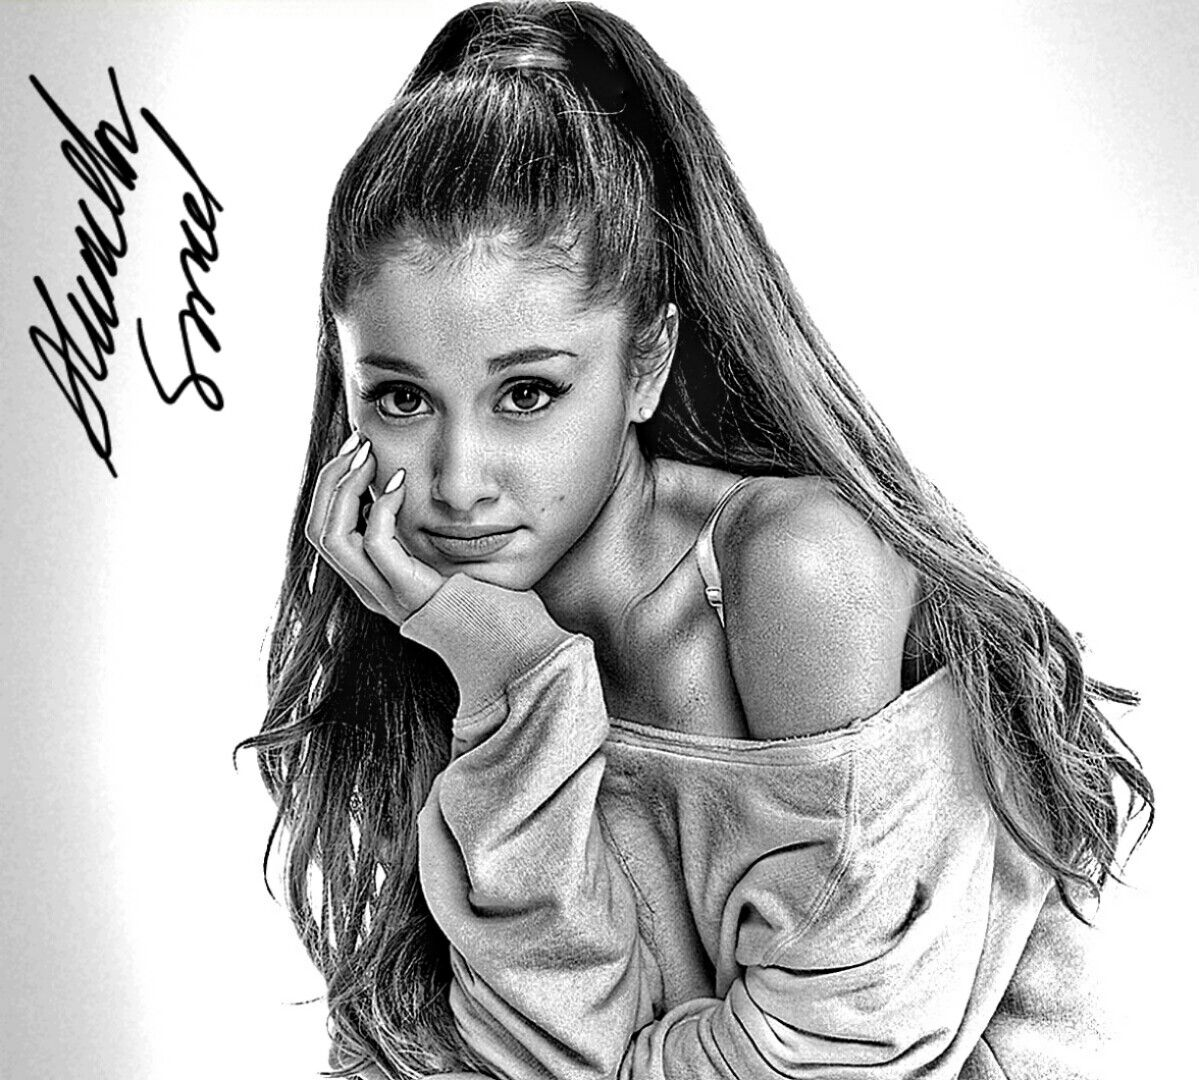 A hyperrealistic drawing of ariana grande ariana grande